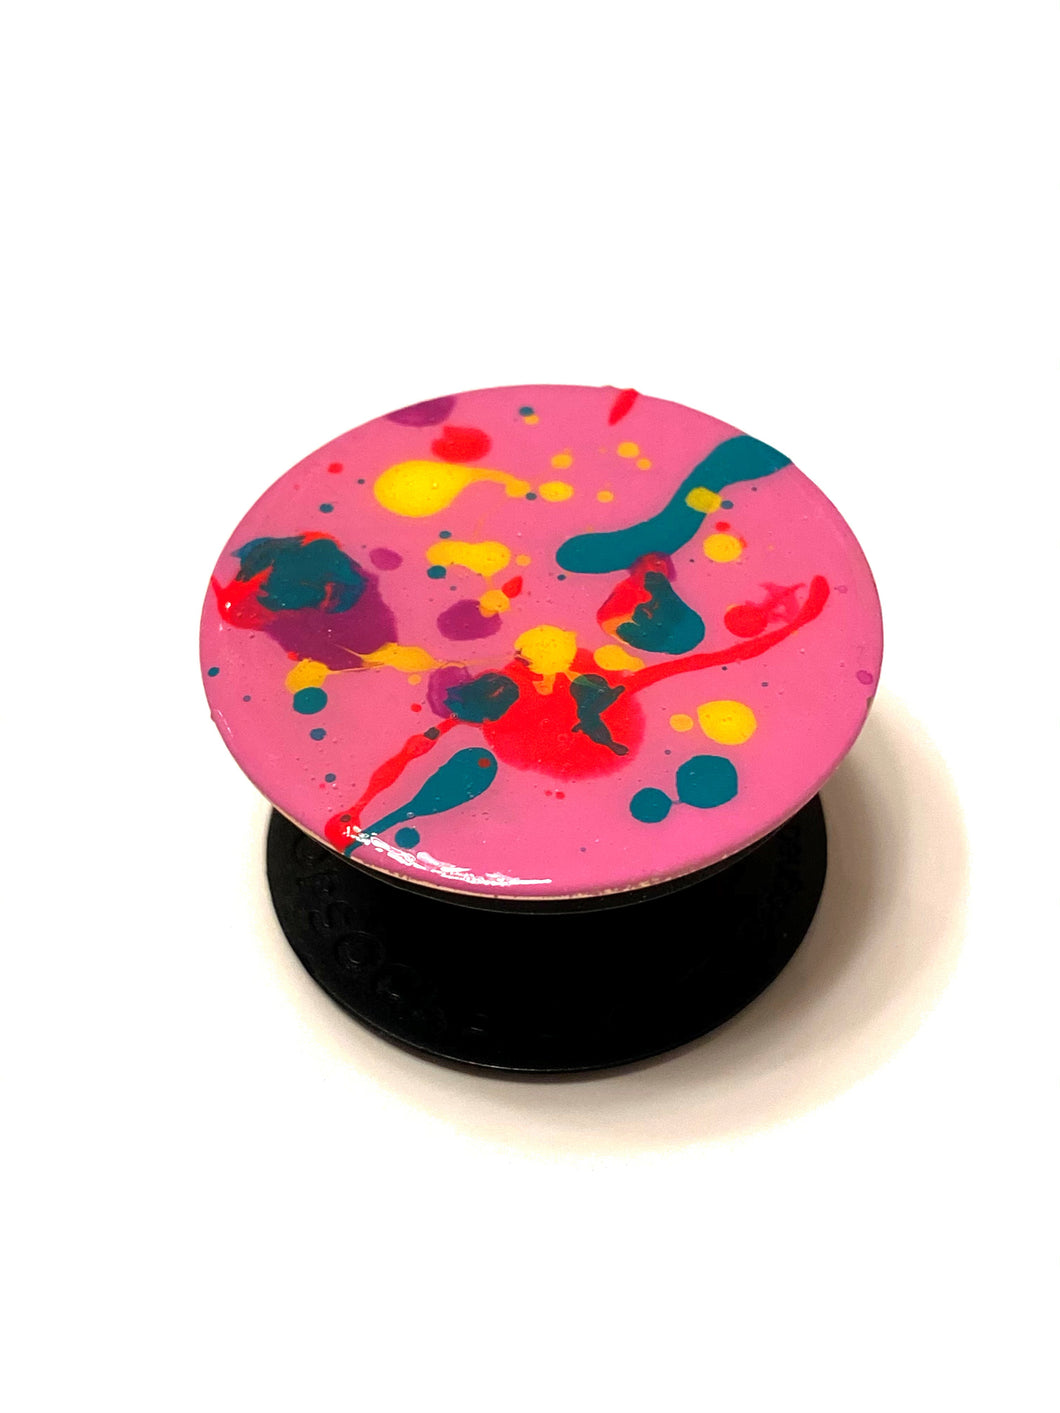 80's Awesome Pink Rainbow Splatter Paint Popsocket Phone Grip